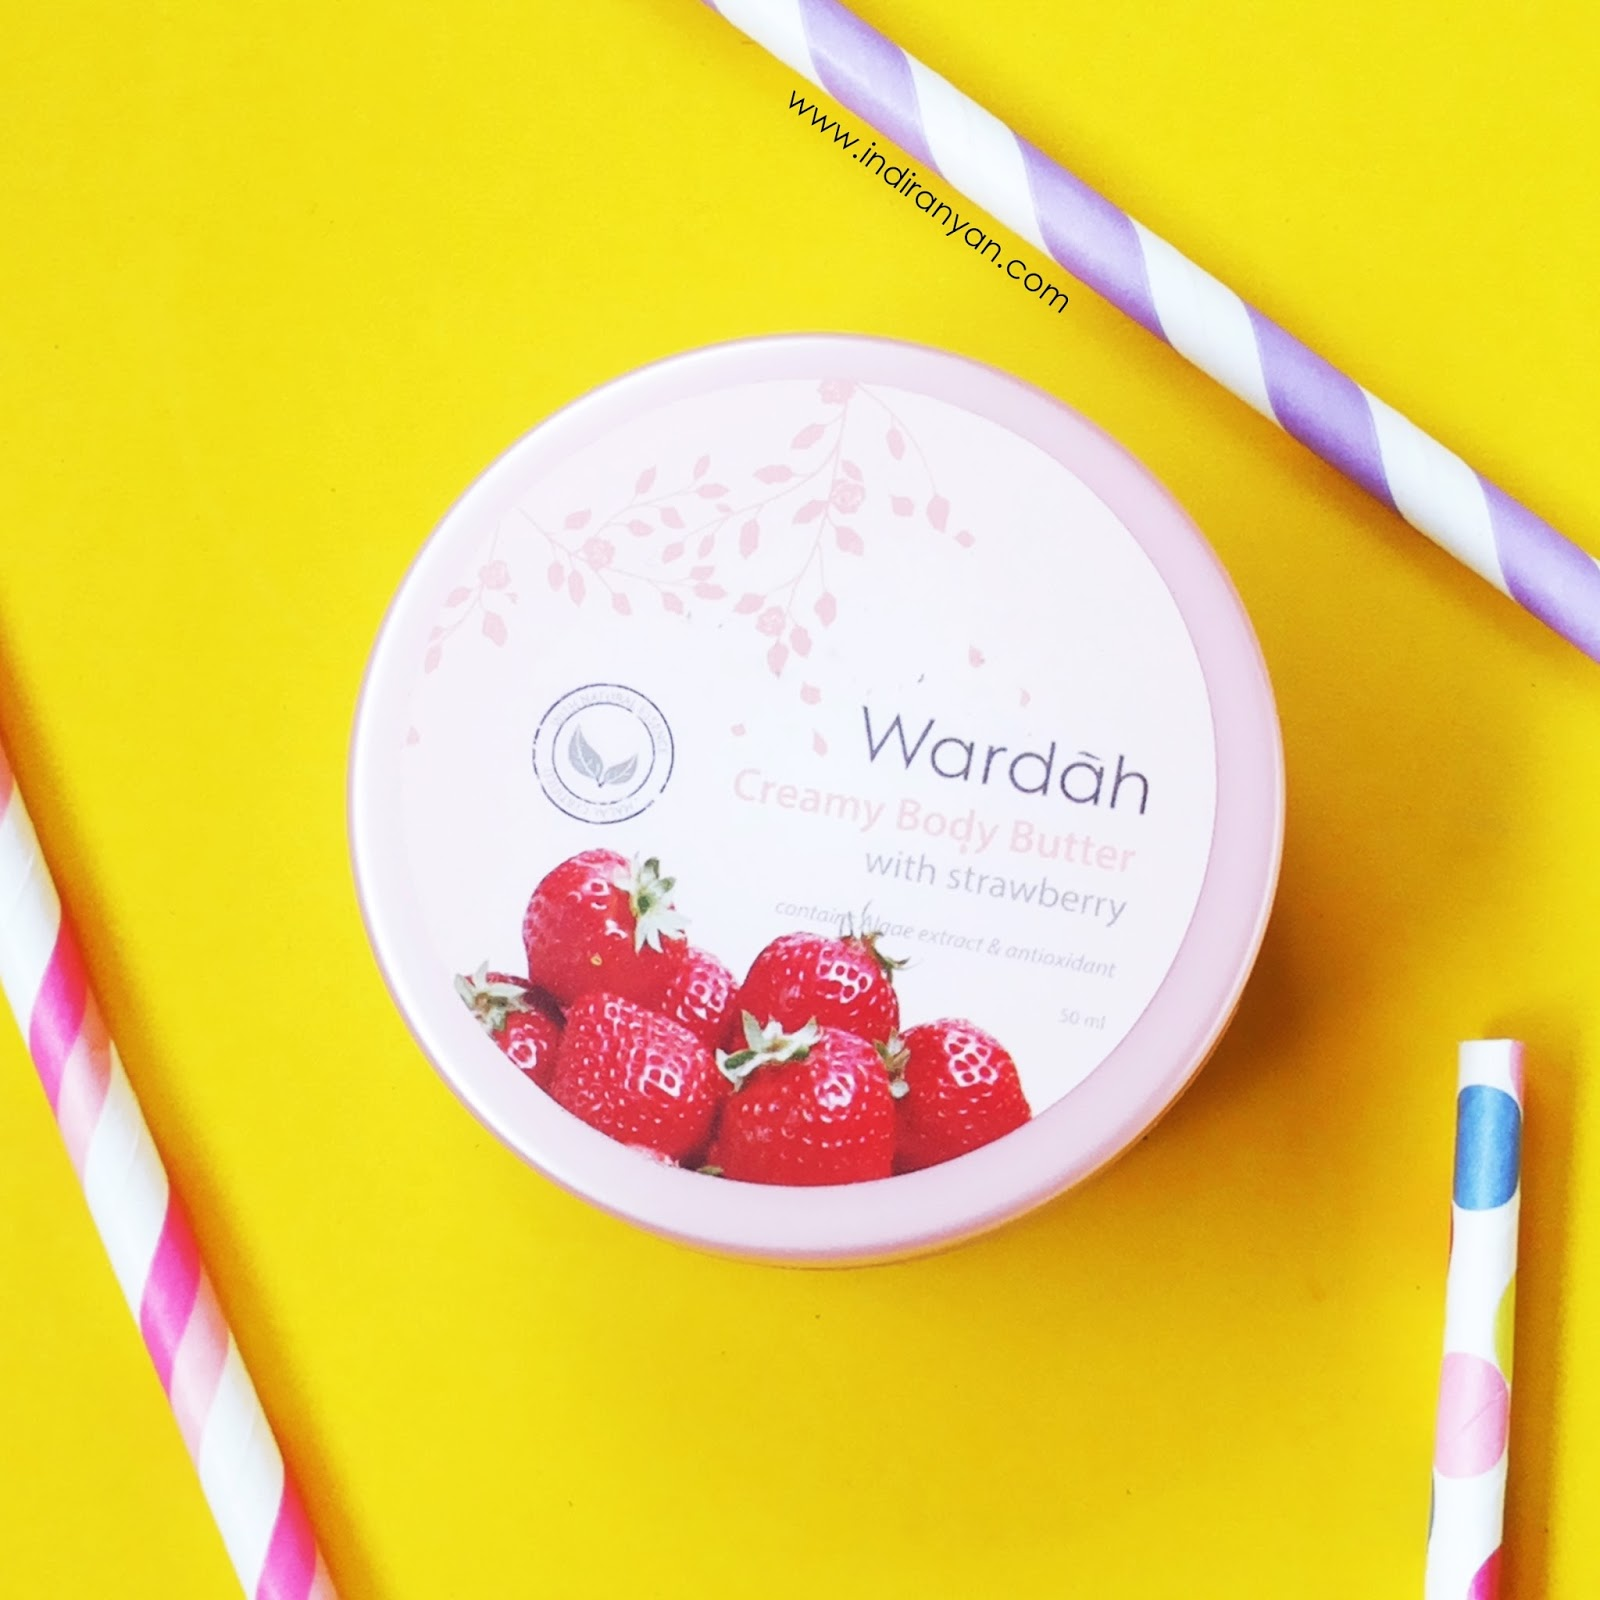 wardah-body-butter-strawberry